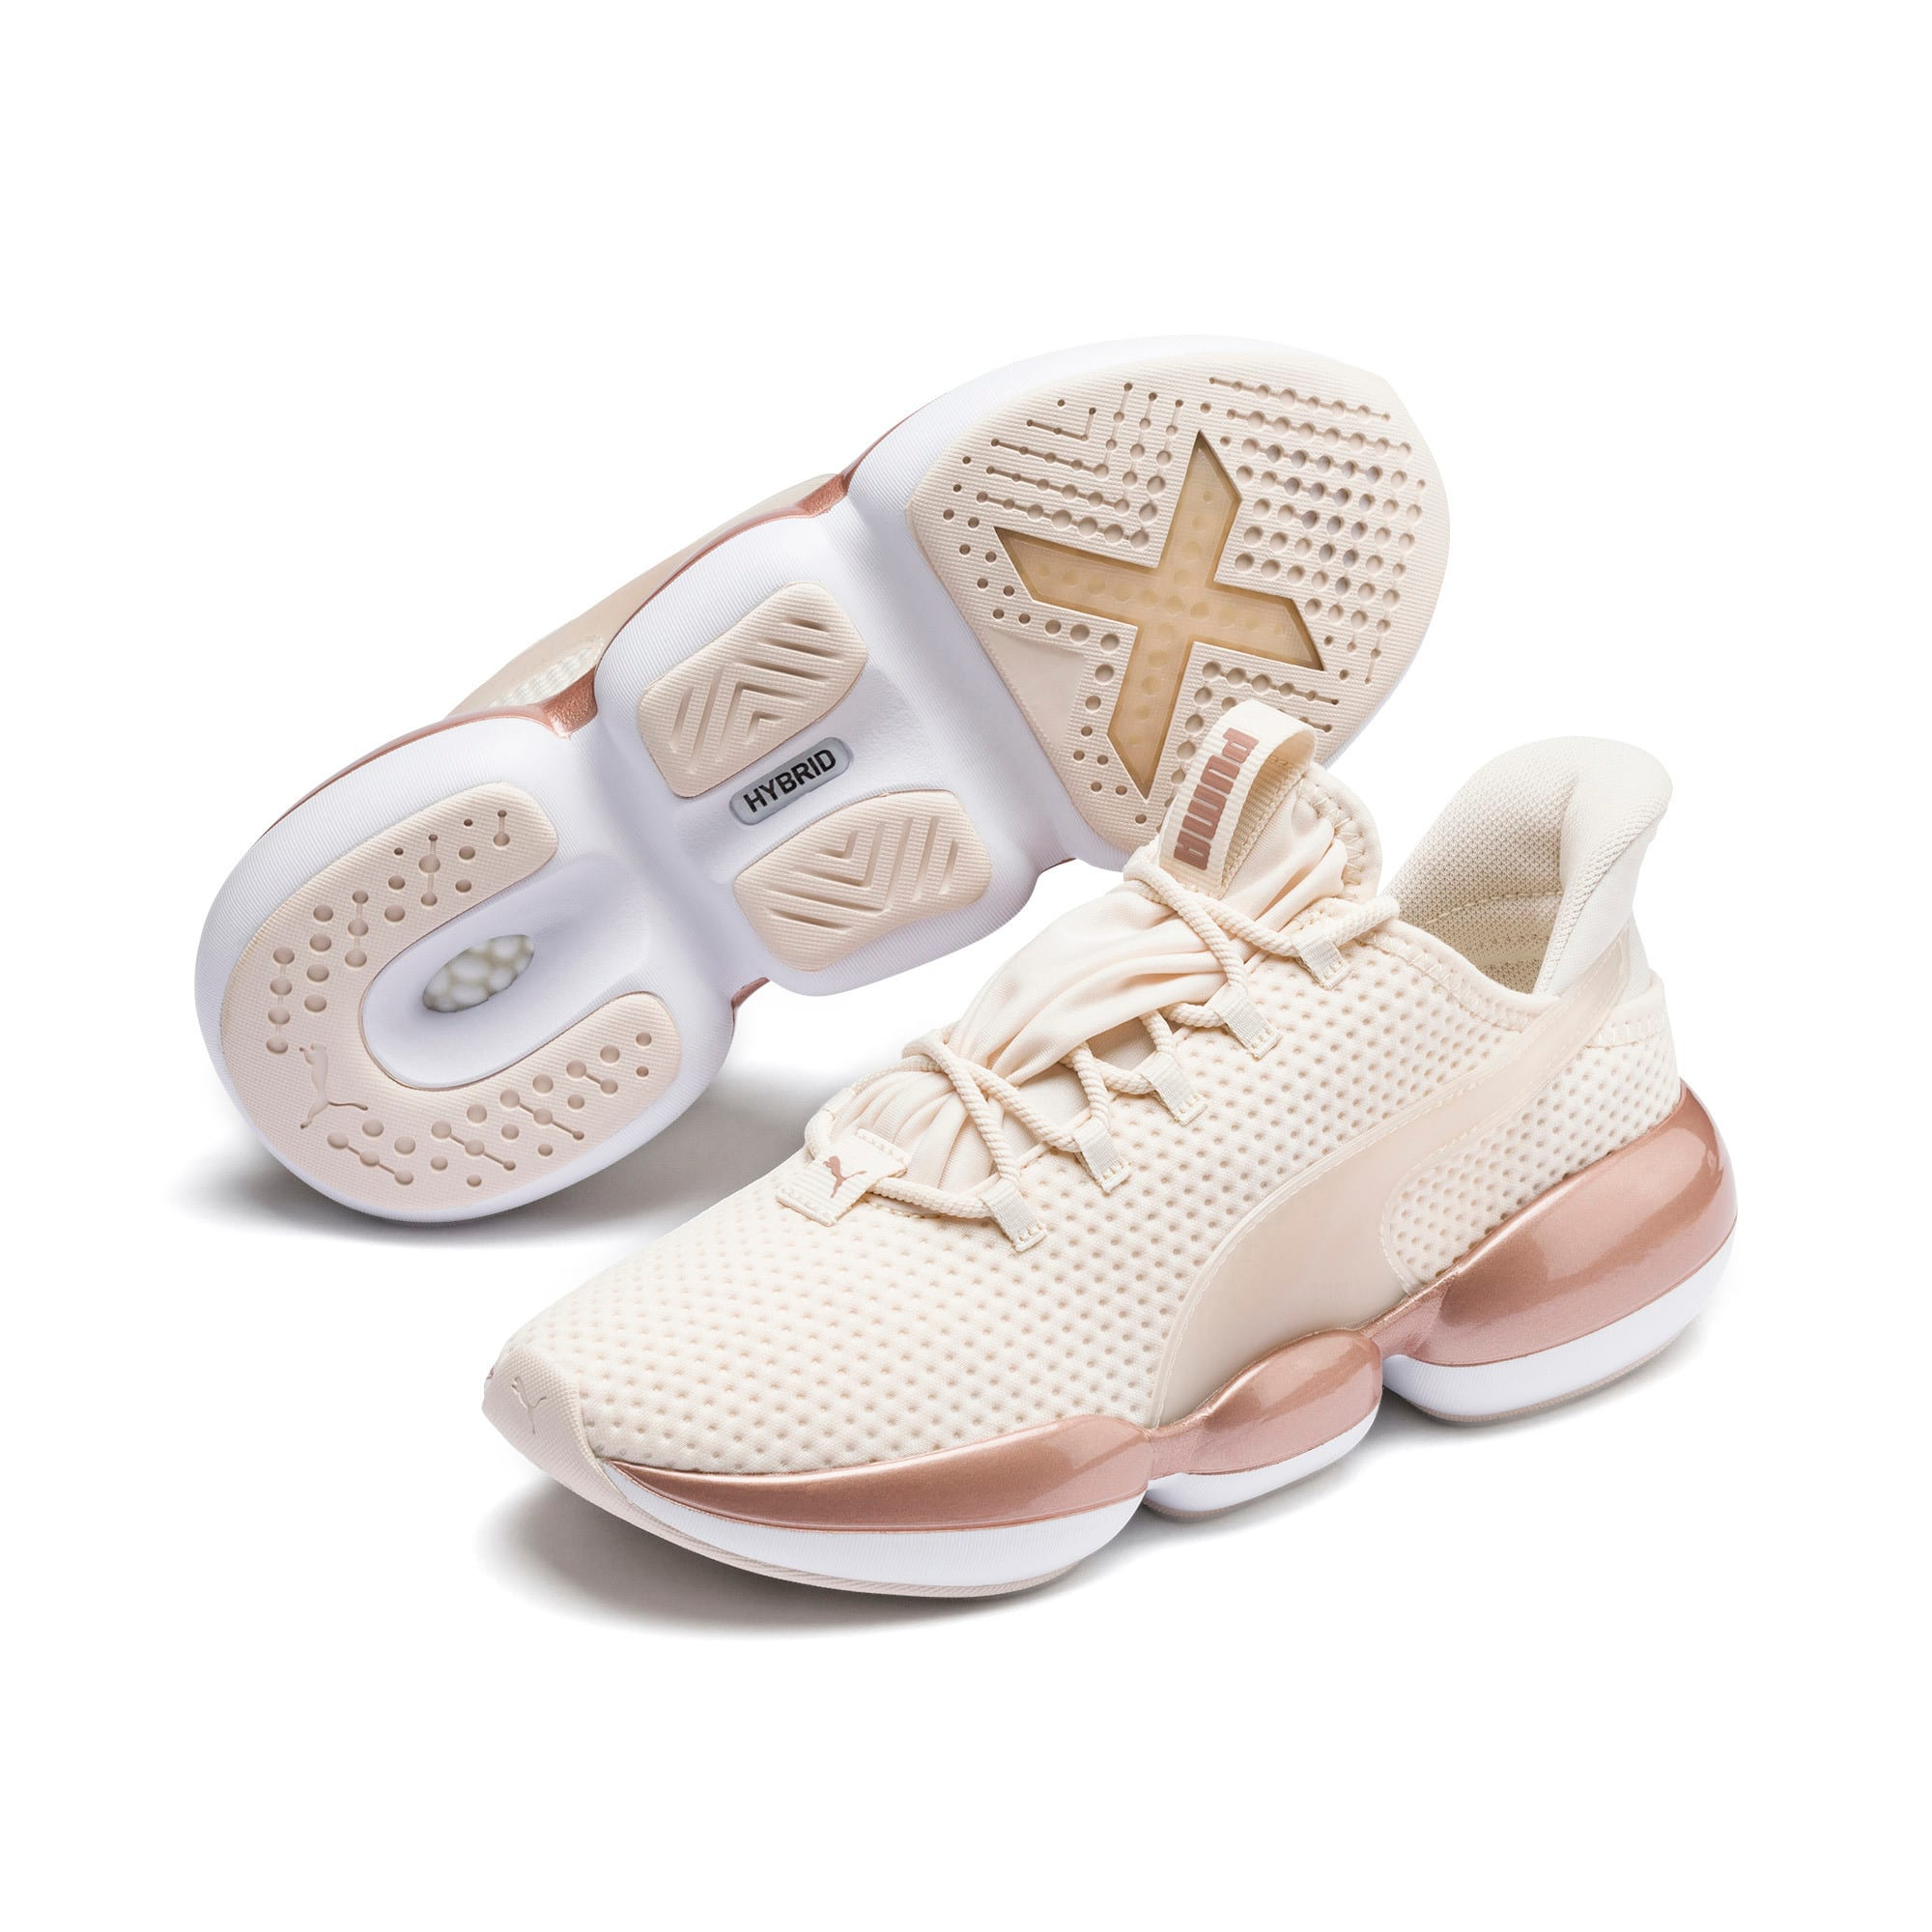 Thumbnail 3 of Mode XT Women's Training Trainers, Pastel Parchment-Rose Gold, medium